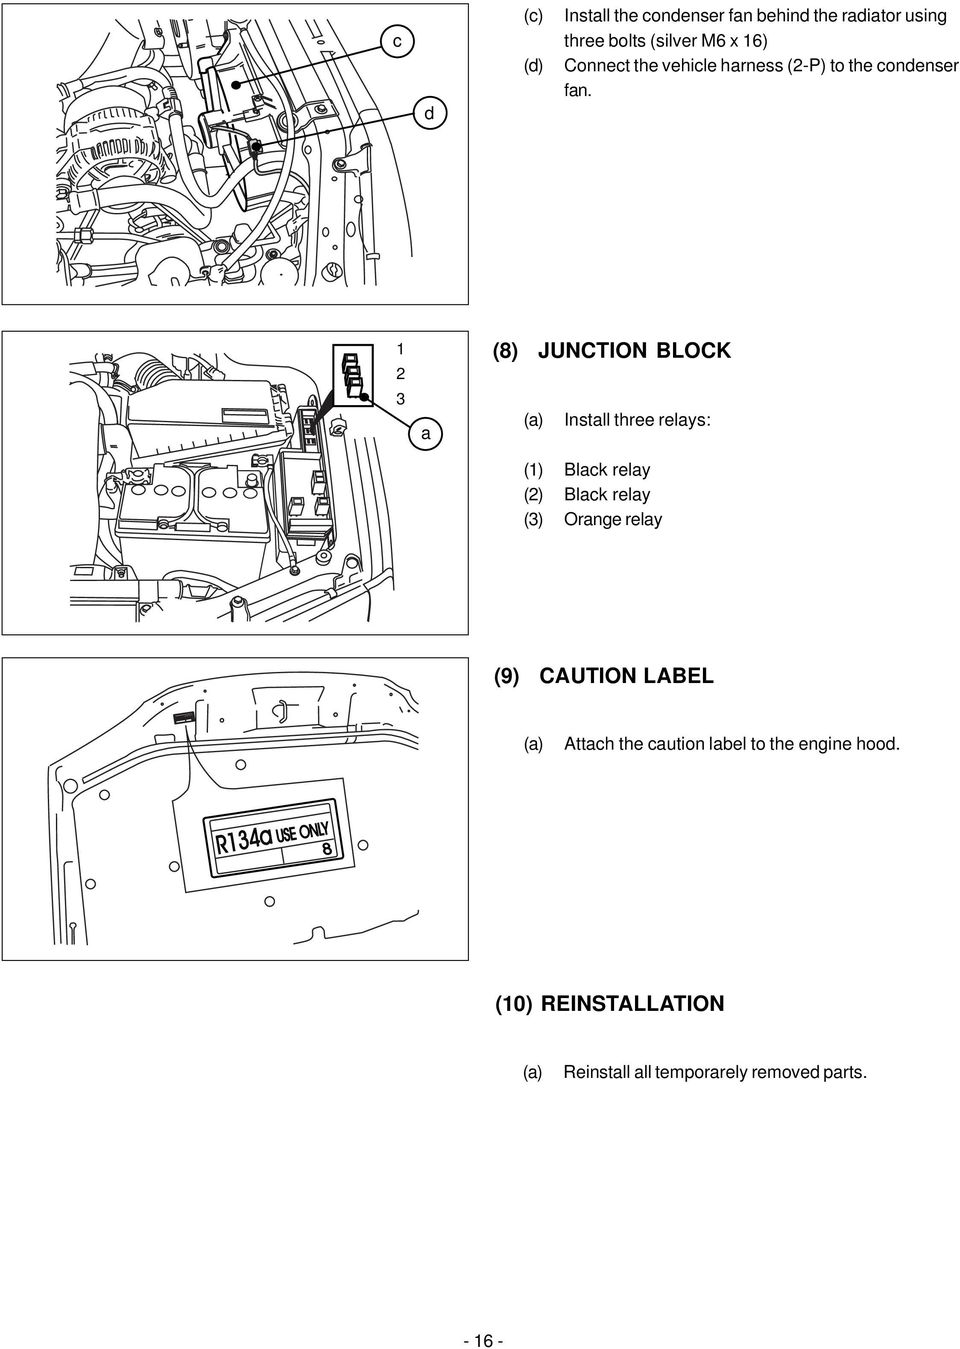 Installation Manual Inside Engine Compartment Zzt22r 1zz Fe 3zz 2005 Toyota Corolla Fuel Filter Location 1 2 3 A 8 Junction Block Install Three Relays